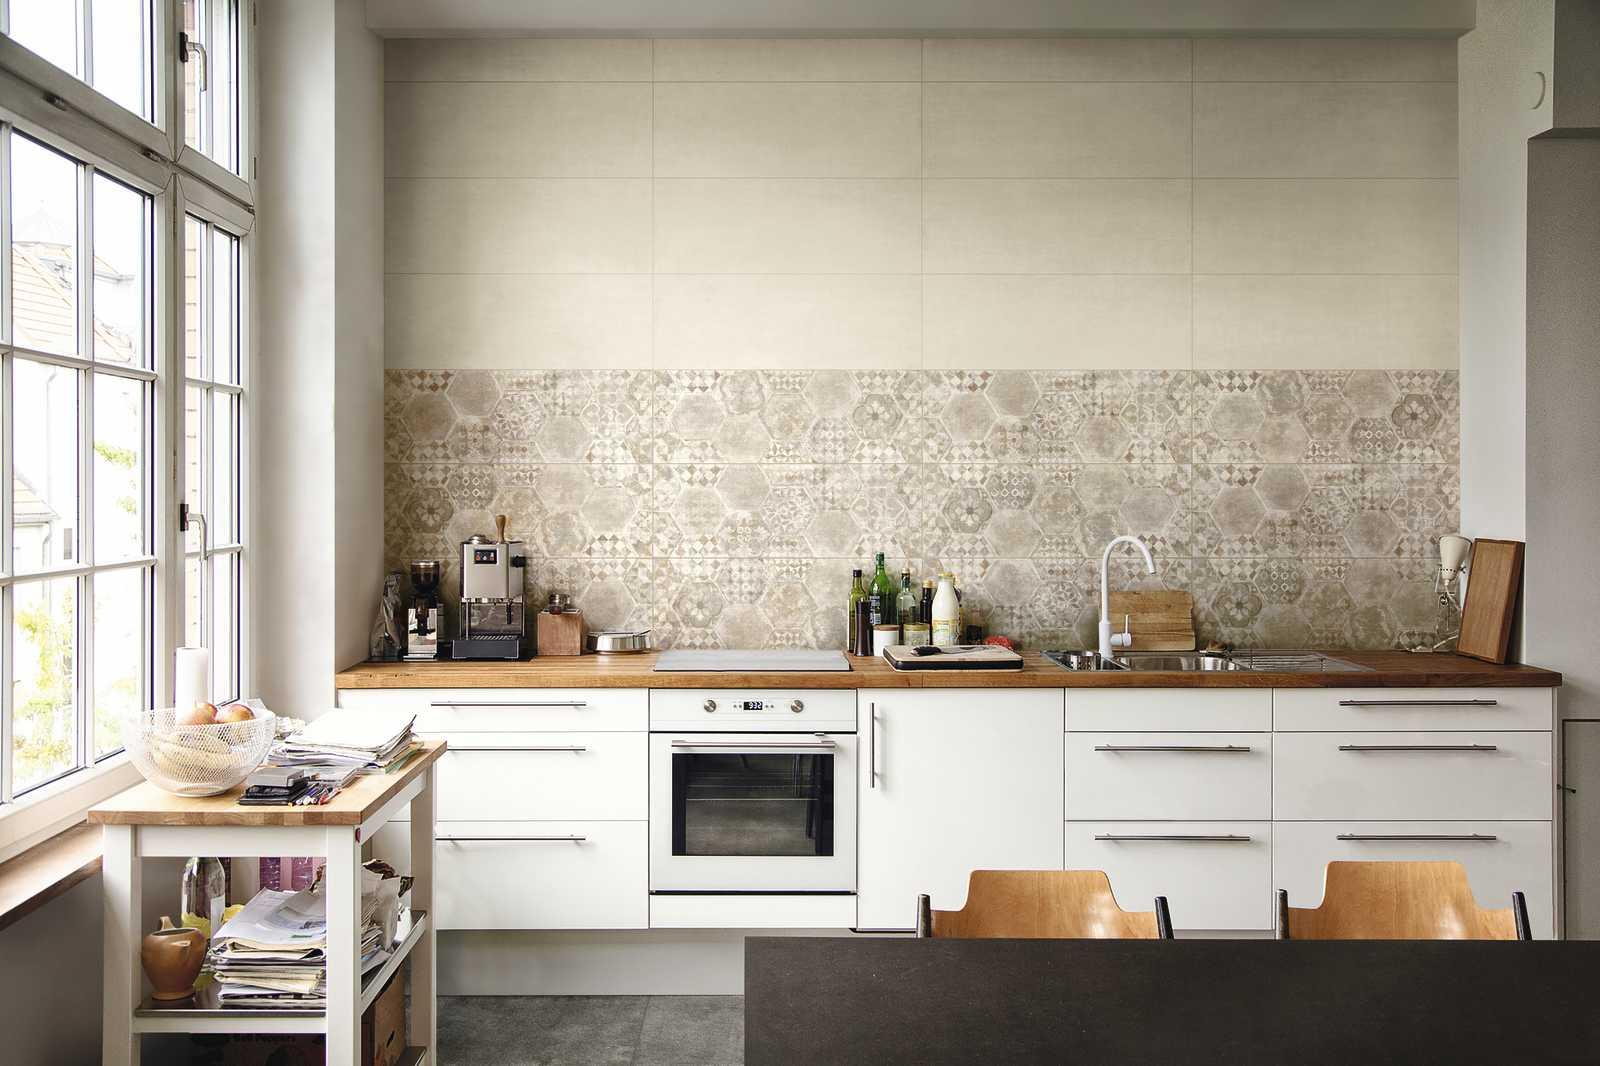 Awesome foto piastrelle cucina contemporary lepicentre.info